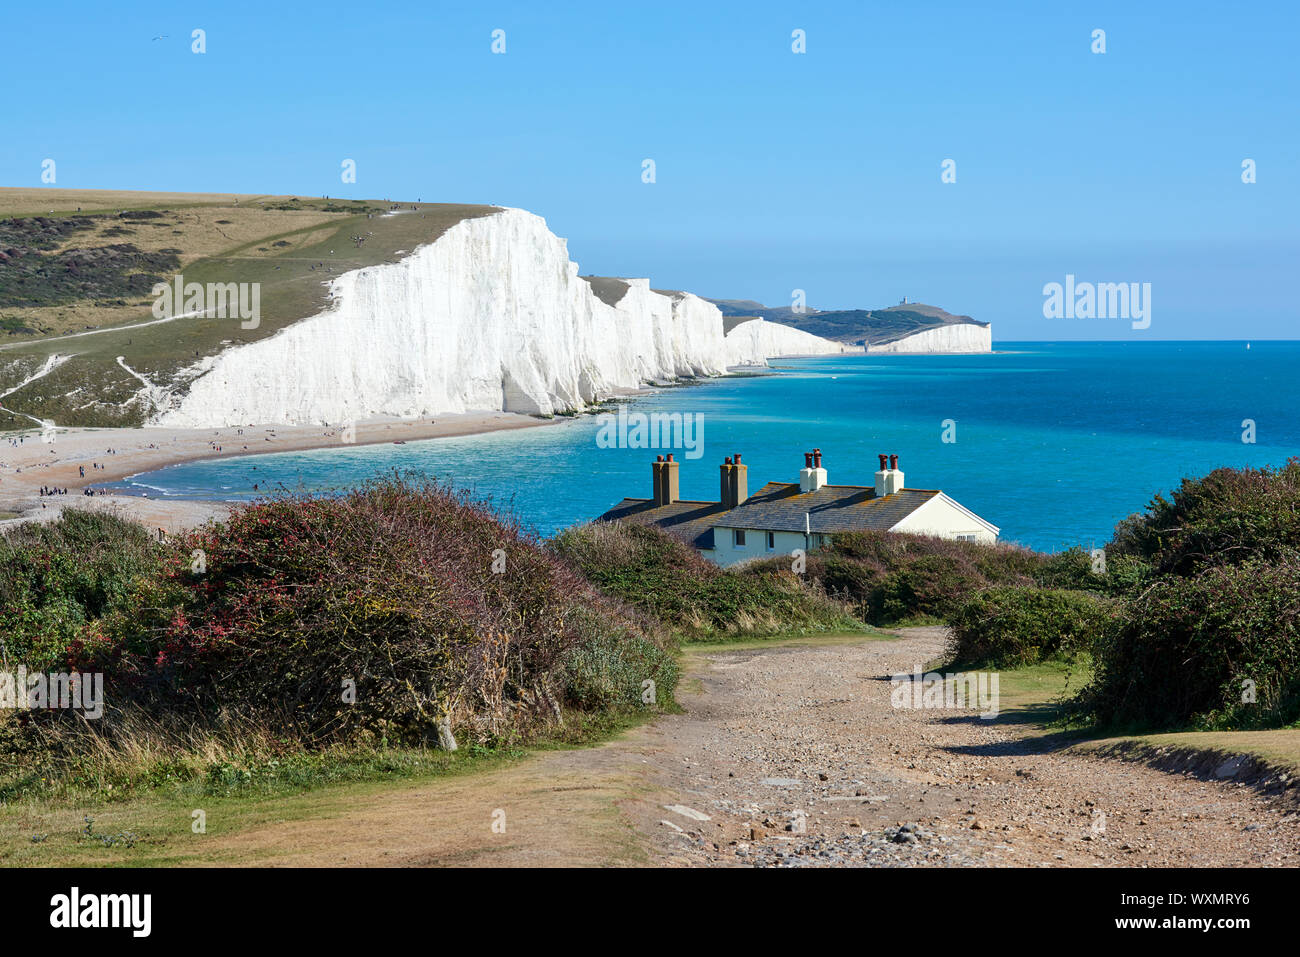 The Seven Sisters cliffs from Seaford Head above Cuckmere Haven, near Eastbourne, on the East Sussex coast, looking East, with coastguard cottages Stock Photo